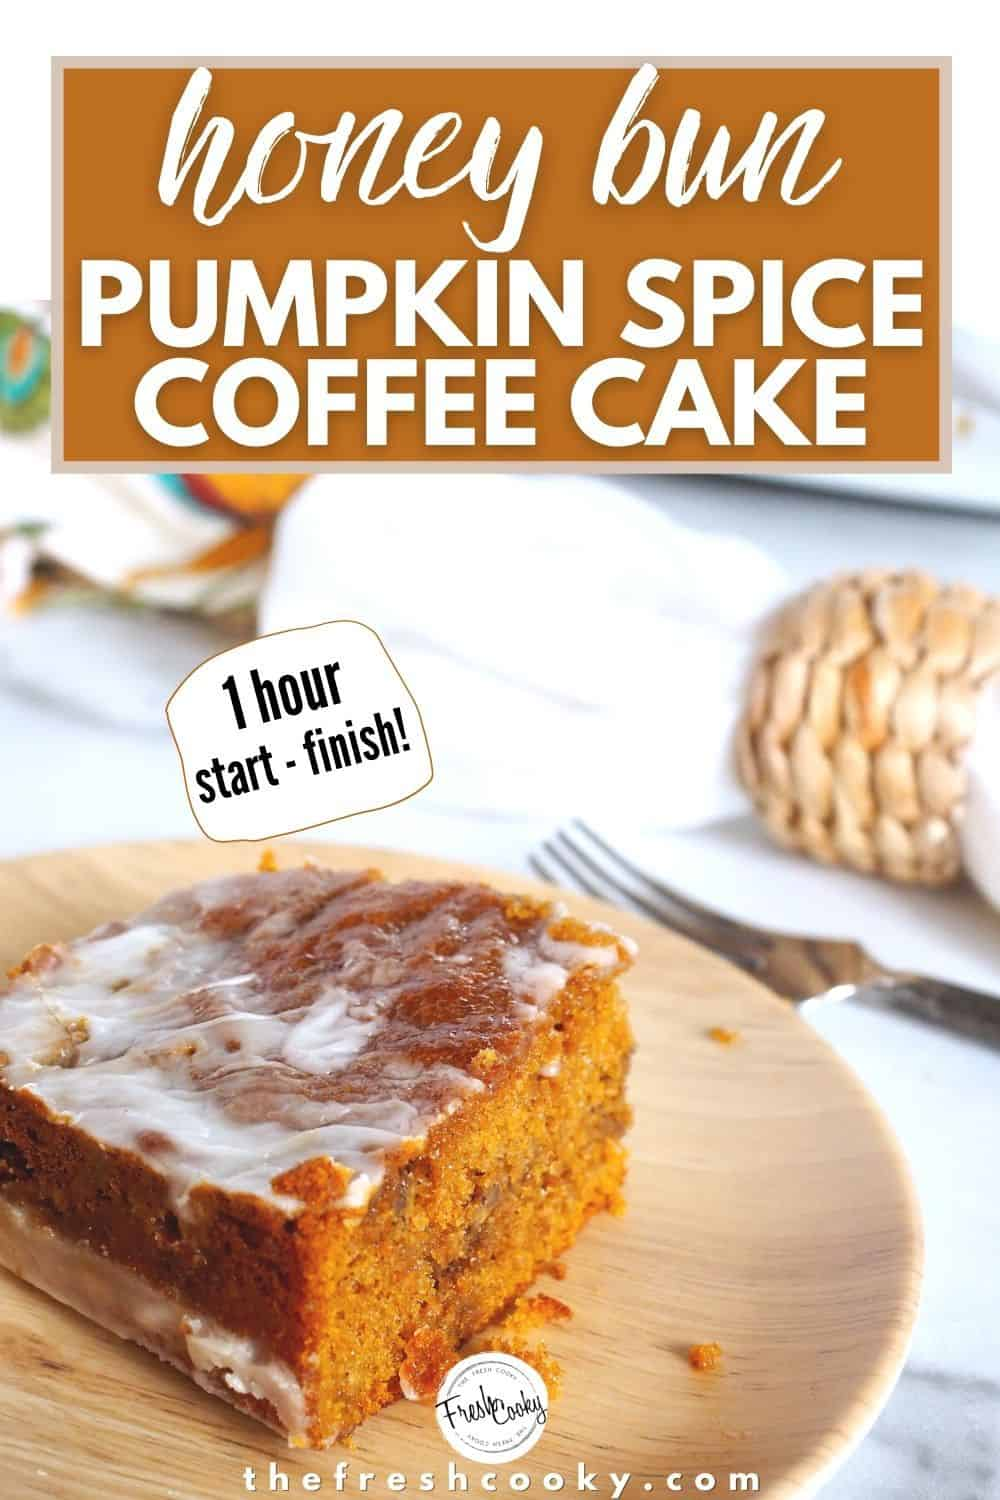 Simple pumpkin honey bun spice cake with a warm maple glaze from The Fresh Cooky is perfect for fall baking! This almost from scratch recipe uses a cake mix and comes together quickly for the best coffee cake of the season. High altitude adjustments included. Try it as a Pumpkin Bundt or cupcakes, includes video. #thefreshcooky #pumpkincake #spicecake via @thefreshcooky